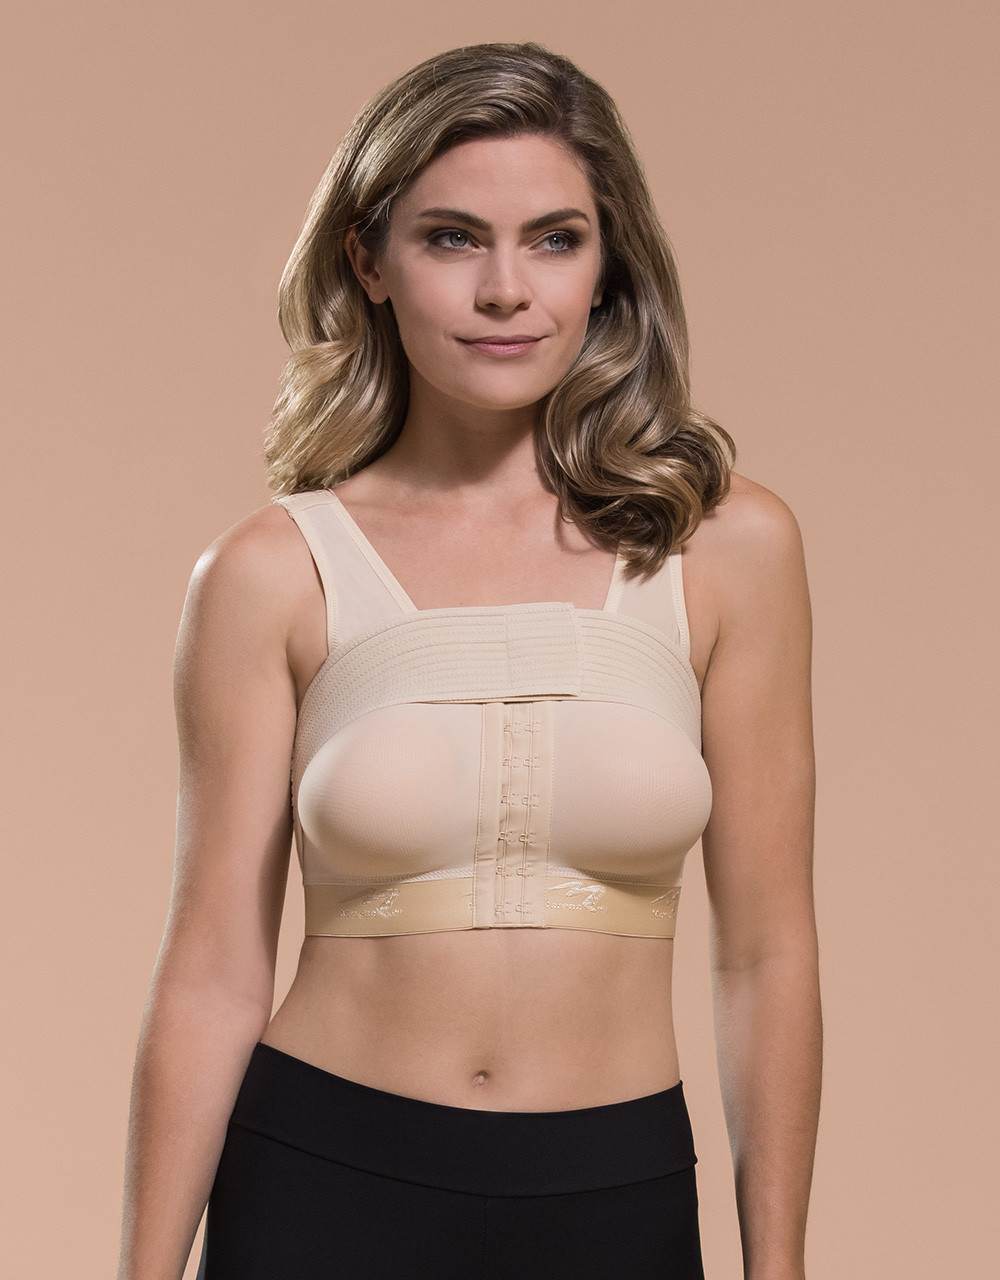 aef72f2ea Seamless Cup - Bra with Implant Stabilizer